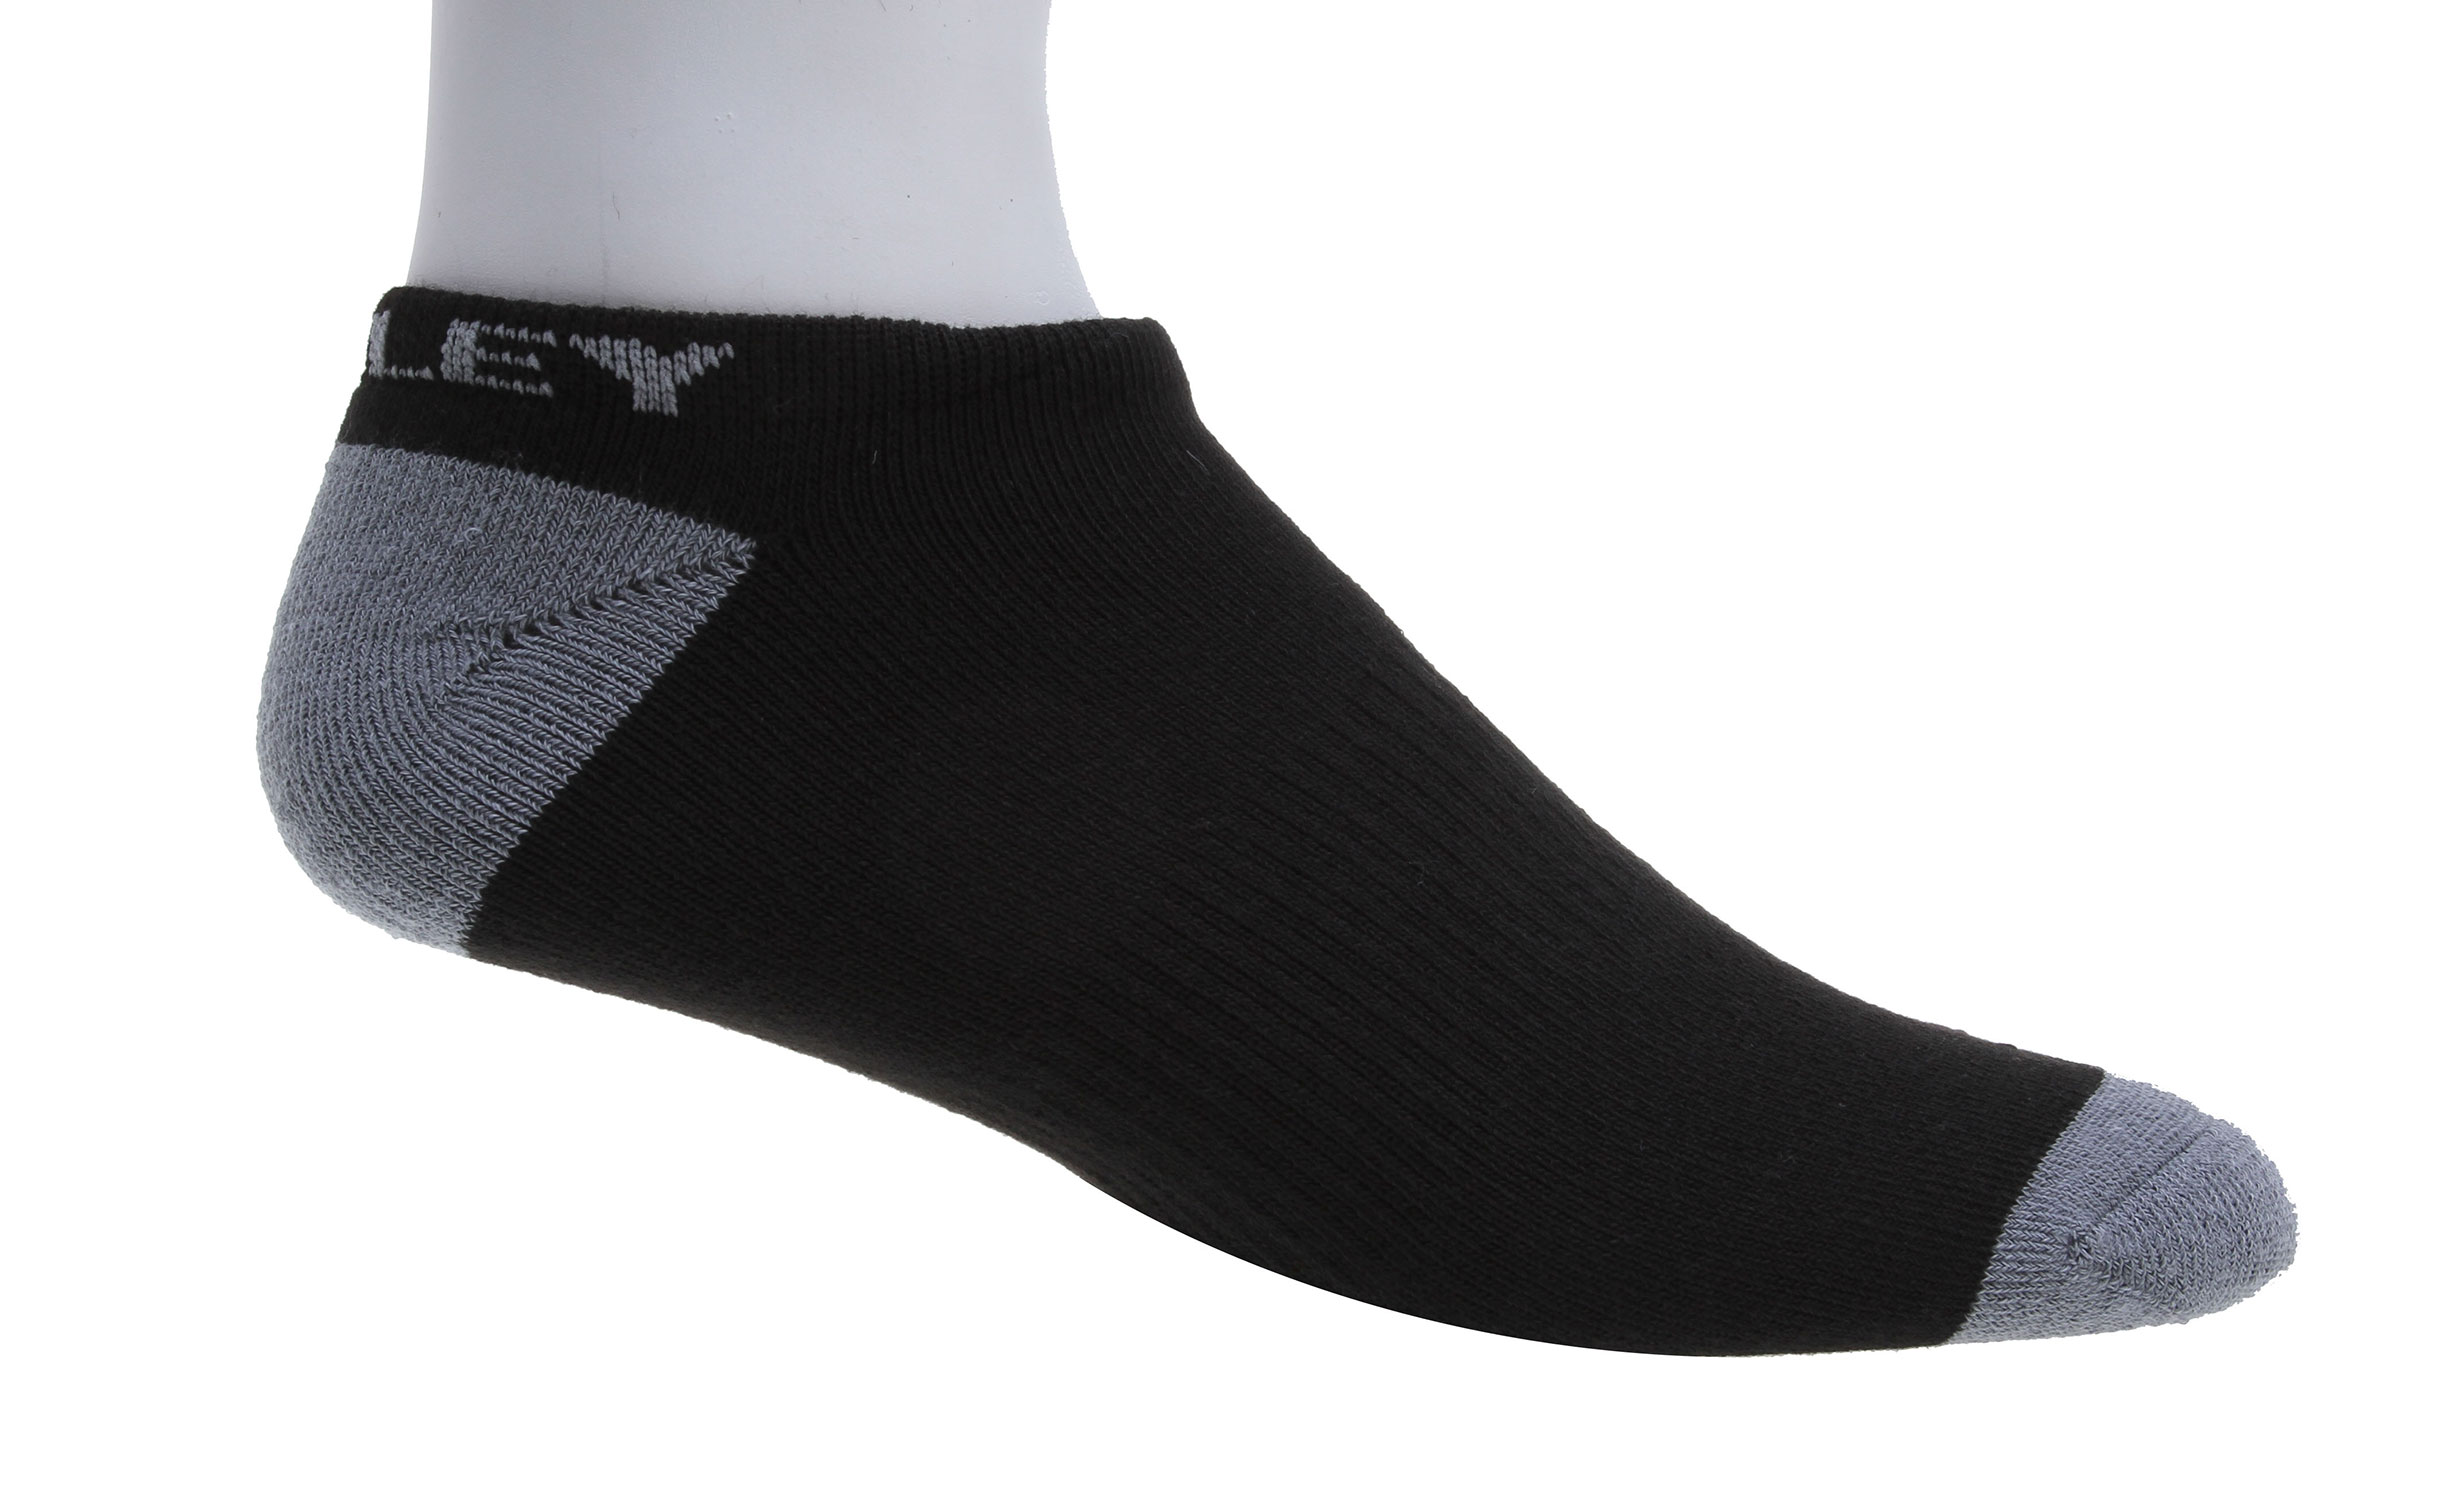 Ultra-lightweight with sweat-wicking power, the Performance Tech No Show Socks 5 Pack are an essential. Featuring a supportive fit with a ribbed arch band, these socks offer fewer distractions with seamless construction at the toe.Key Features of the Oakley Performance Basic No Show Sock 5 Pack Socks: O Hydrolix™ fabric manages moisture to minimize cling and maximize comfort Cushioning at the midfoot for a comfortable, supportive fit Seamless toe construction to help reduce chafing Ribbed arch band for a supportive fit - $18.00